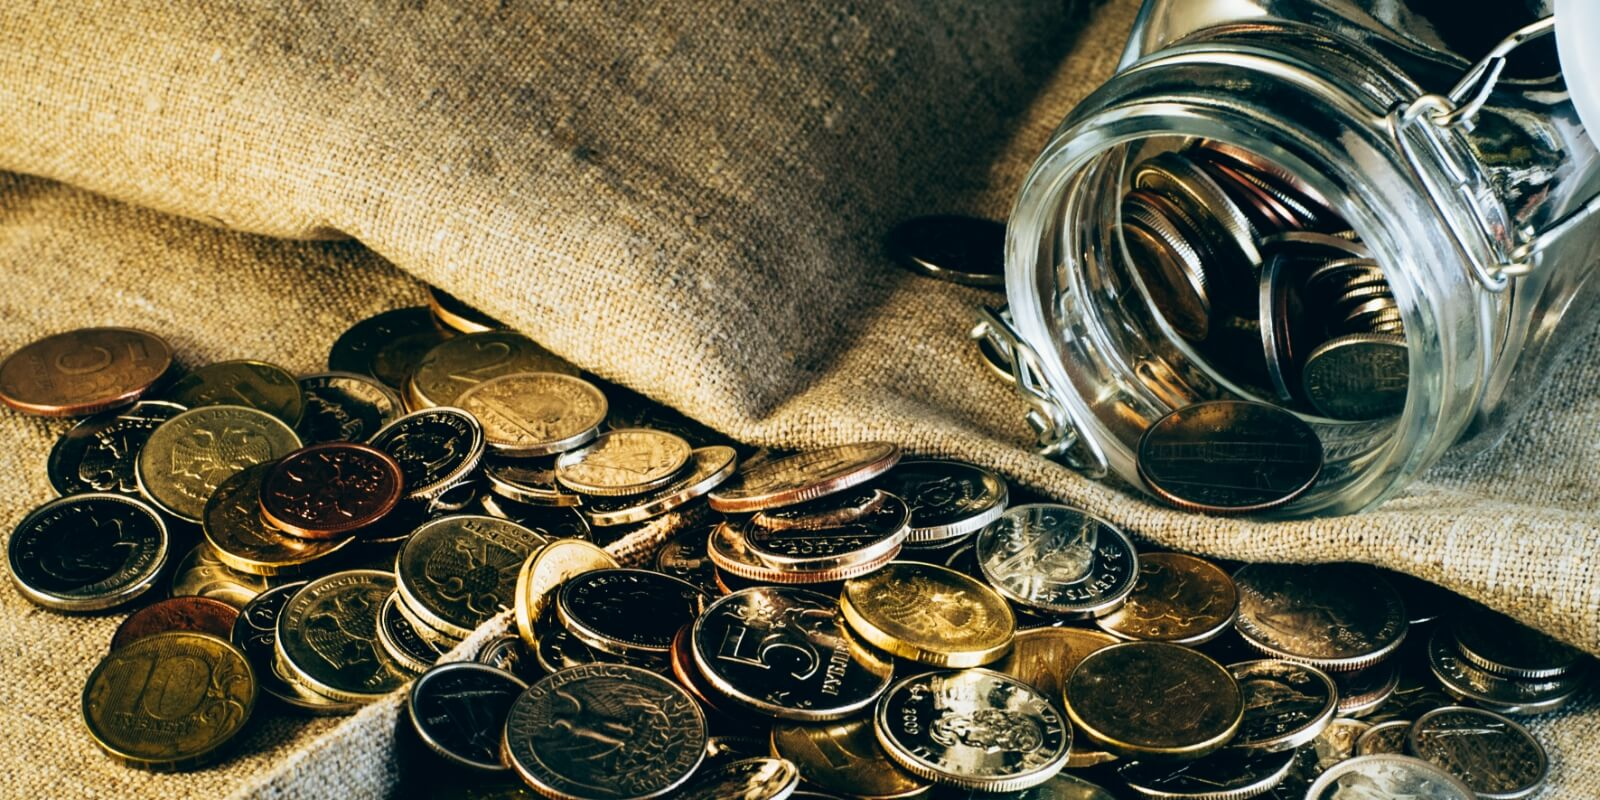 coins in a pile